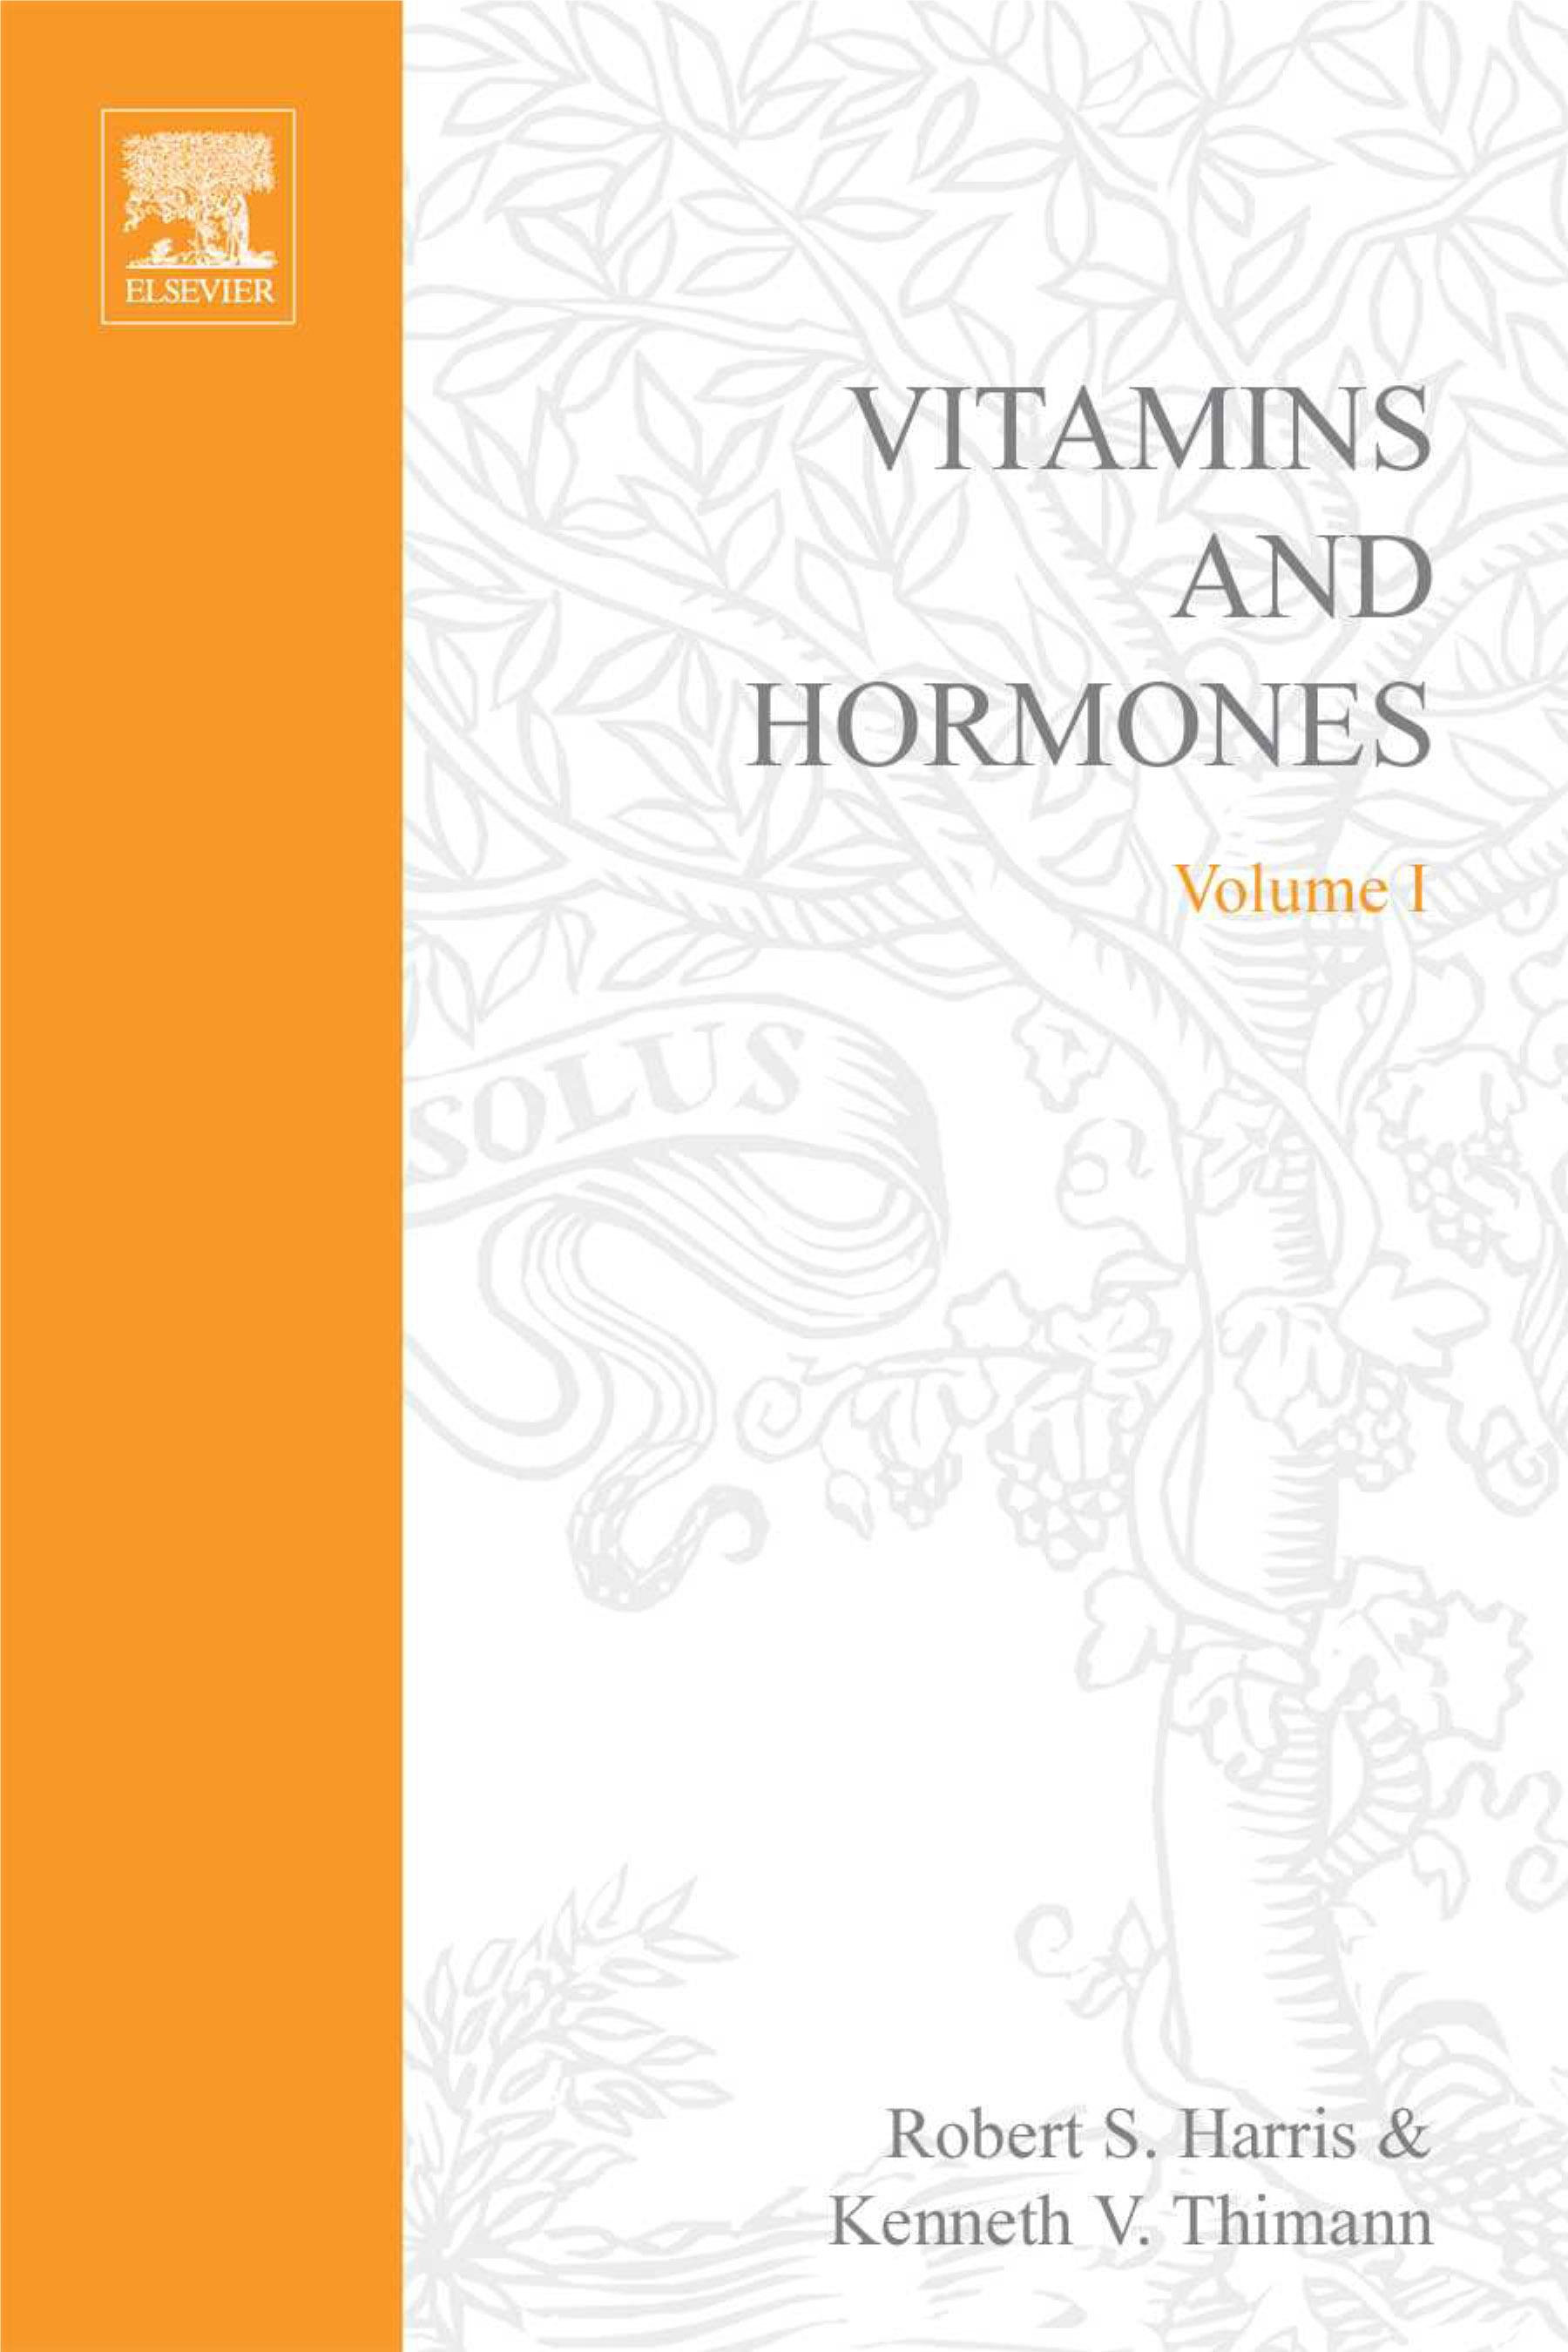 VITAMINS AND HORMONES V1